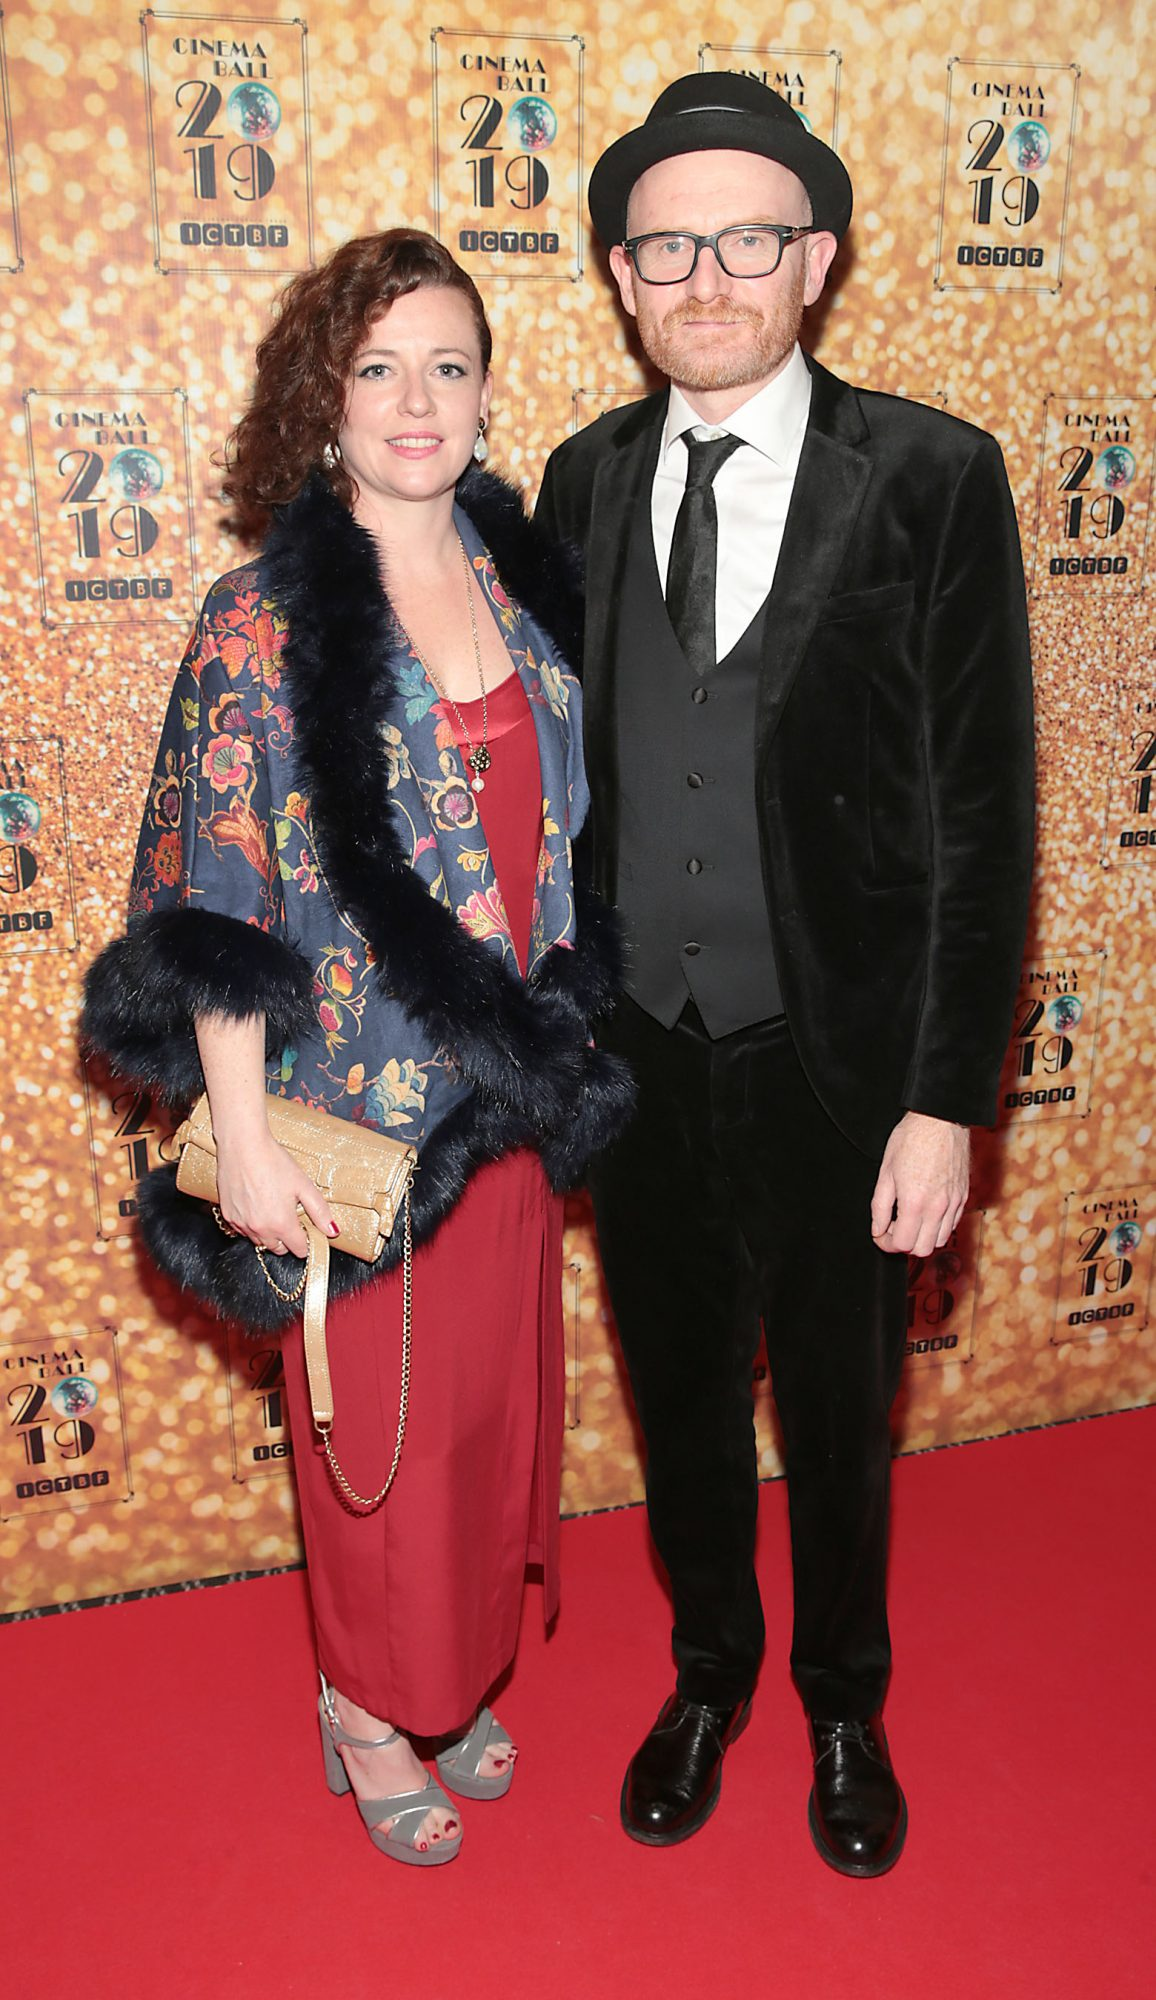 Yvonne Ross and Paul Young pictured at the Irish Cinema Ball 2019 in aid of the Irish Cinematograph Trade Benevolent Fund (ICTBF ) at The Shelbourne Hotel, Dublin This year's theme was the iconic 'Studio 54'. Pic: Brian McEvoy.